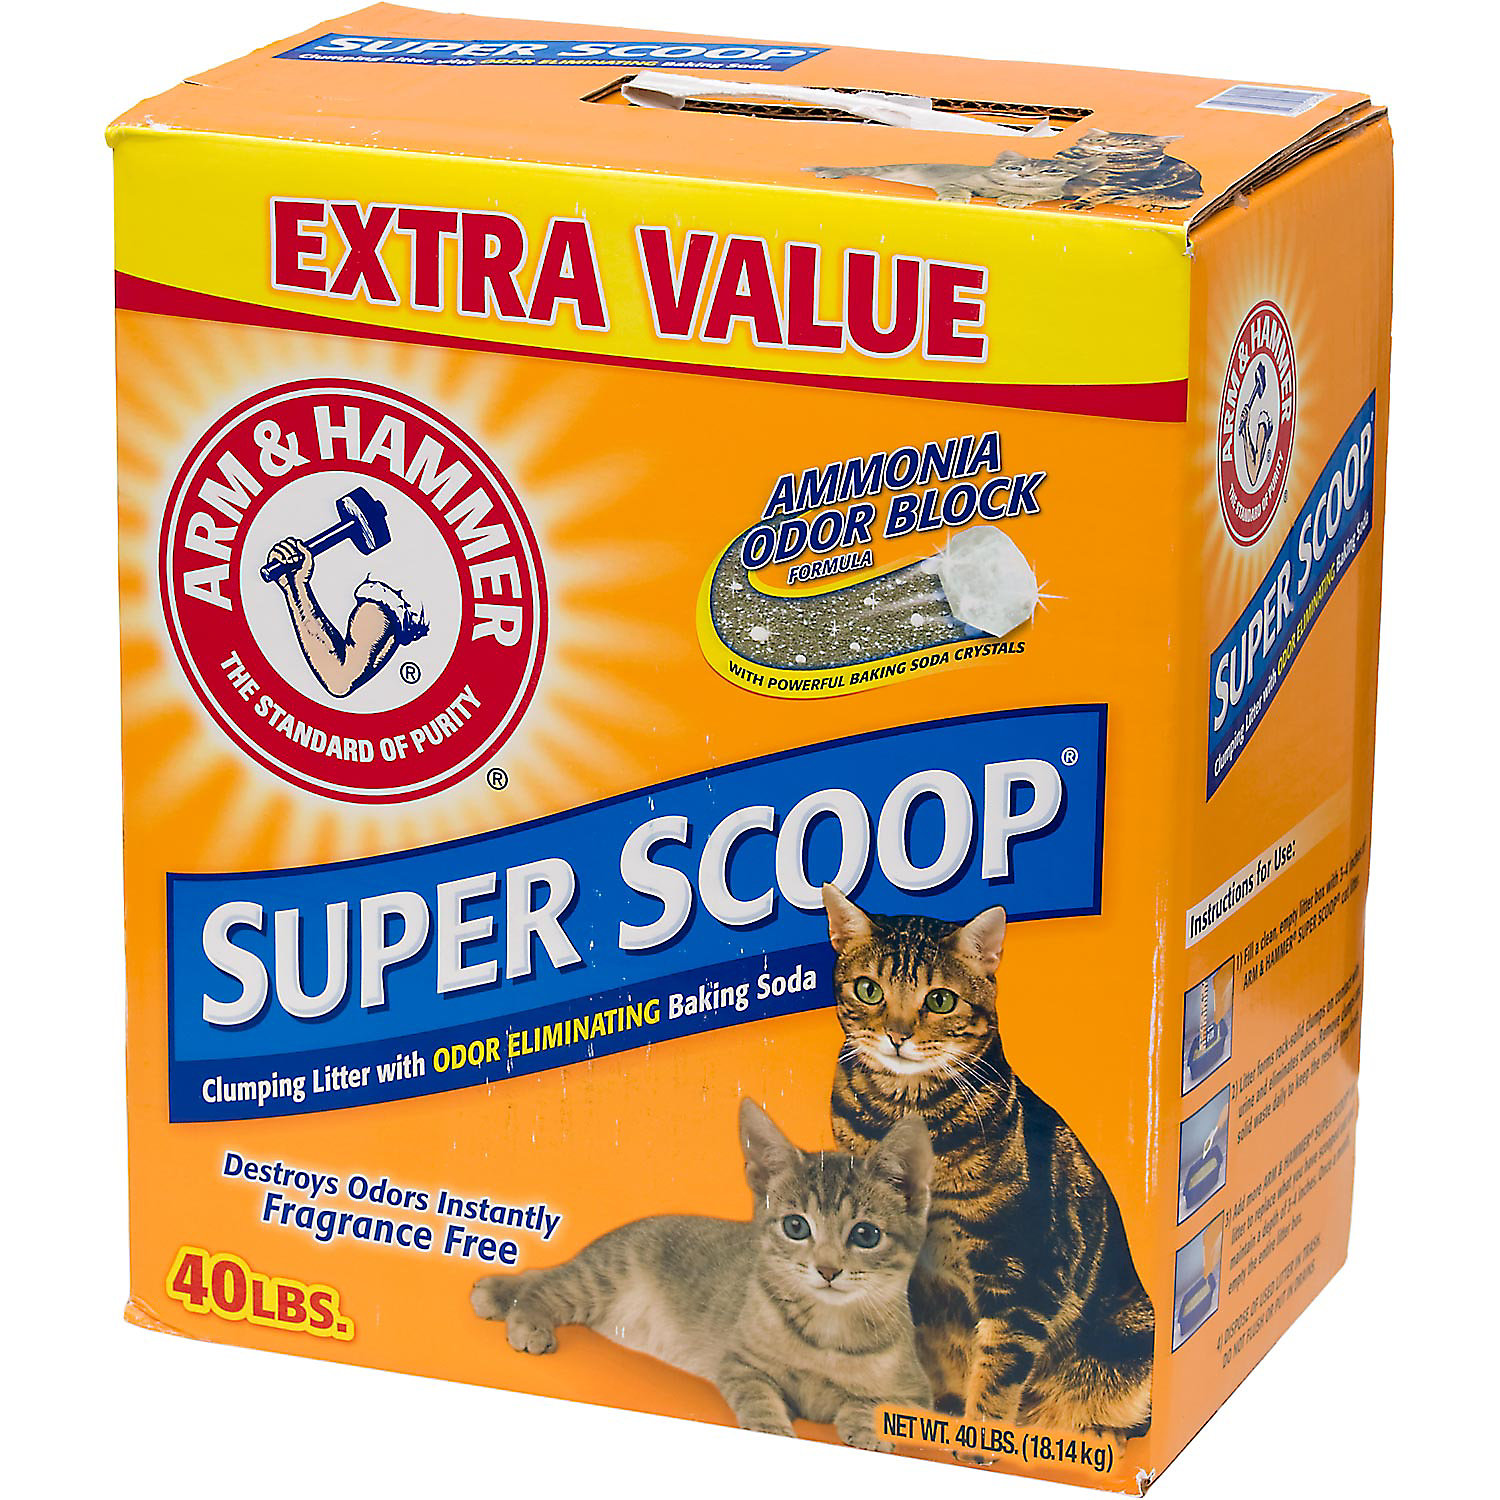 Arm & Hammer Super Scoop Unscented Baking Soda Clumping Litter, 40 lbs.